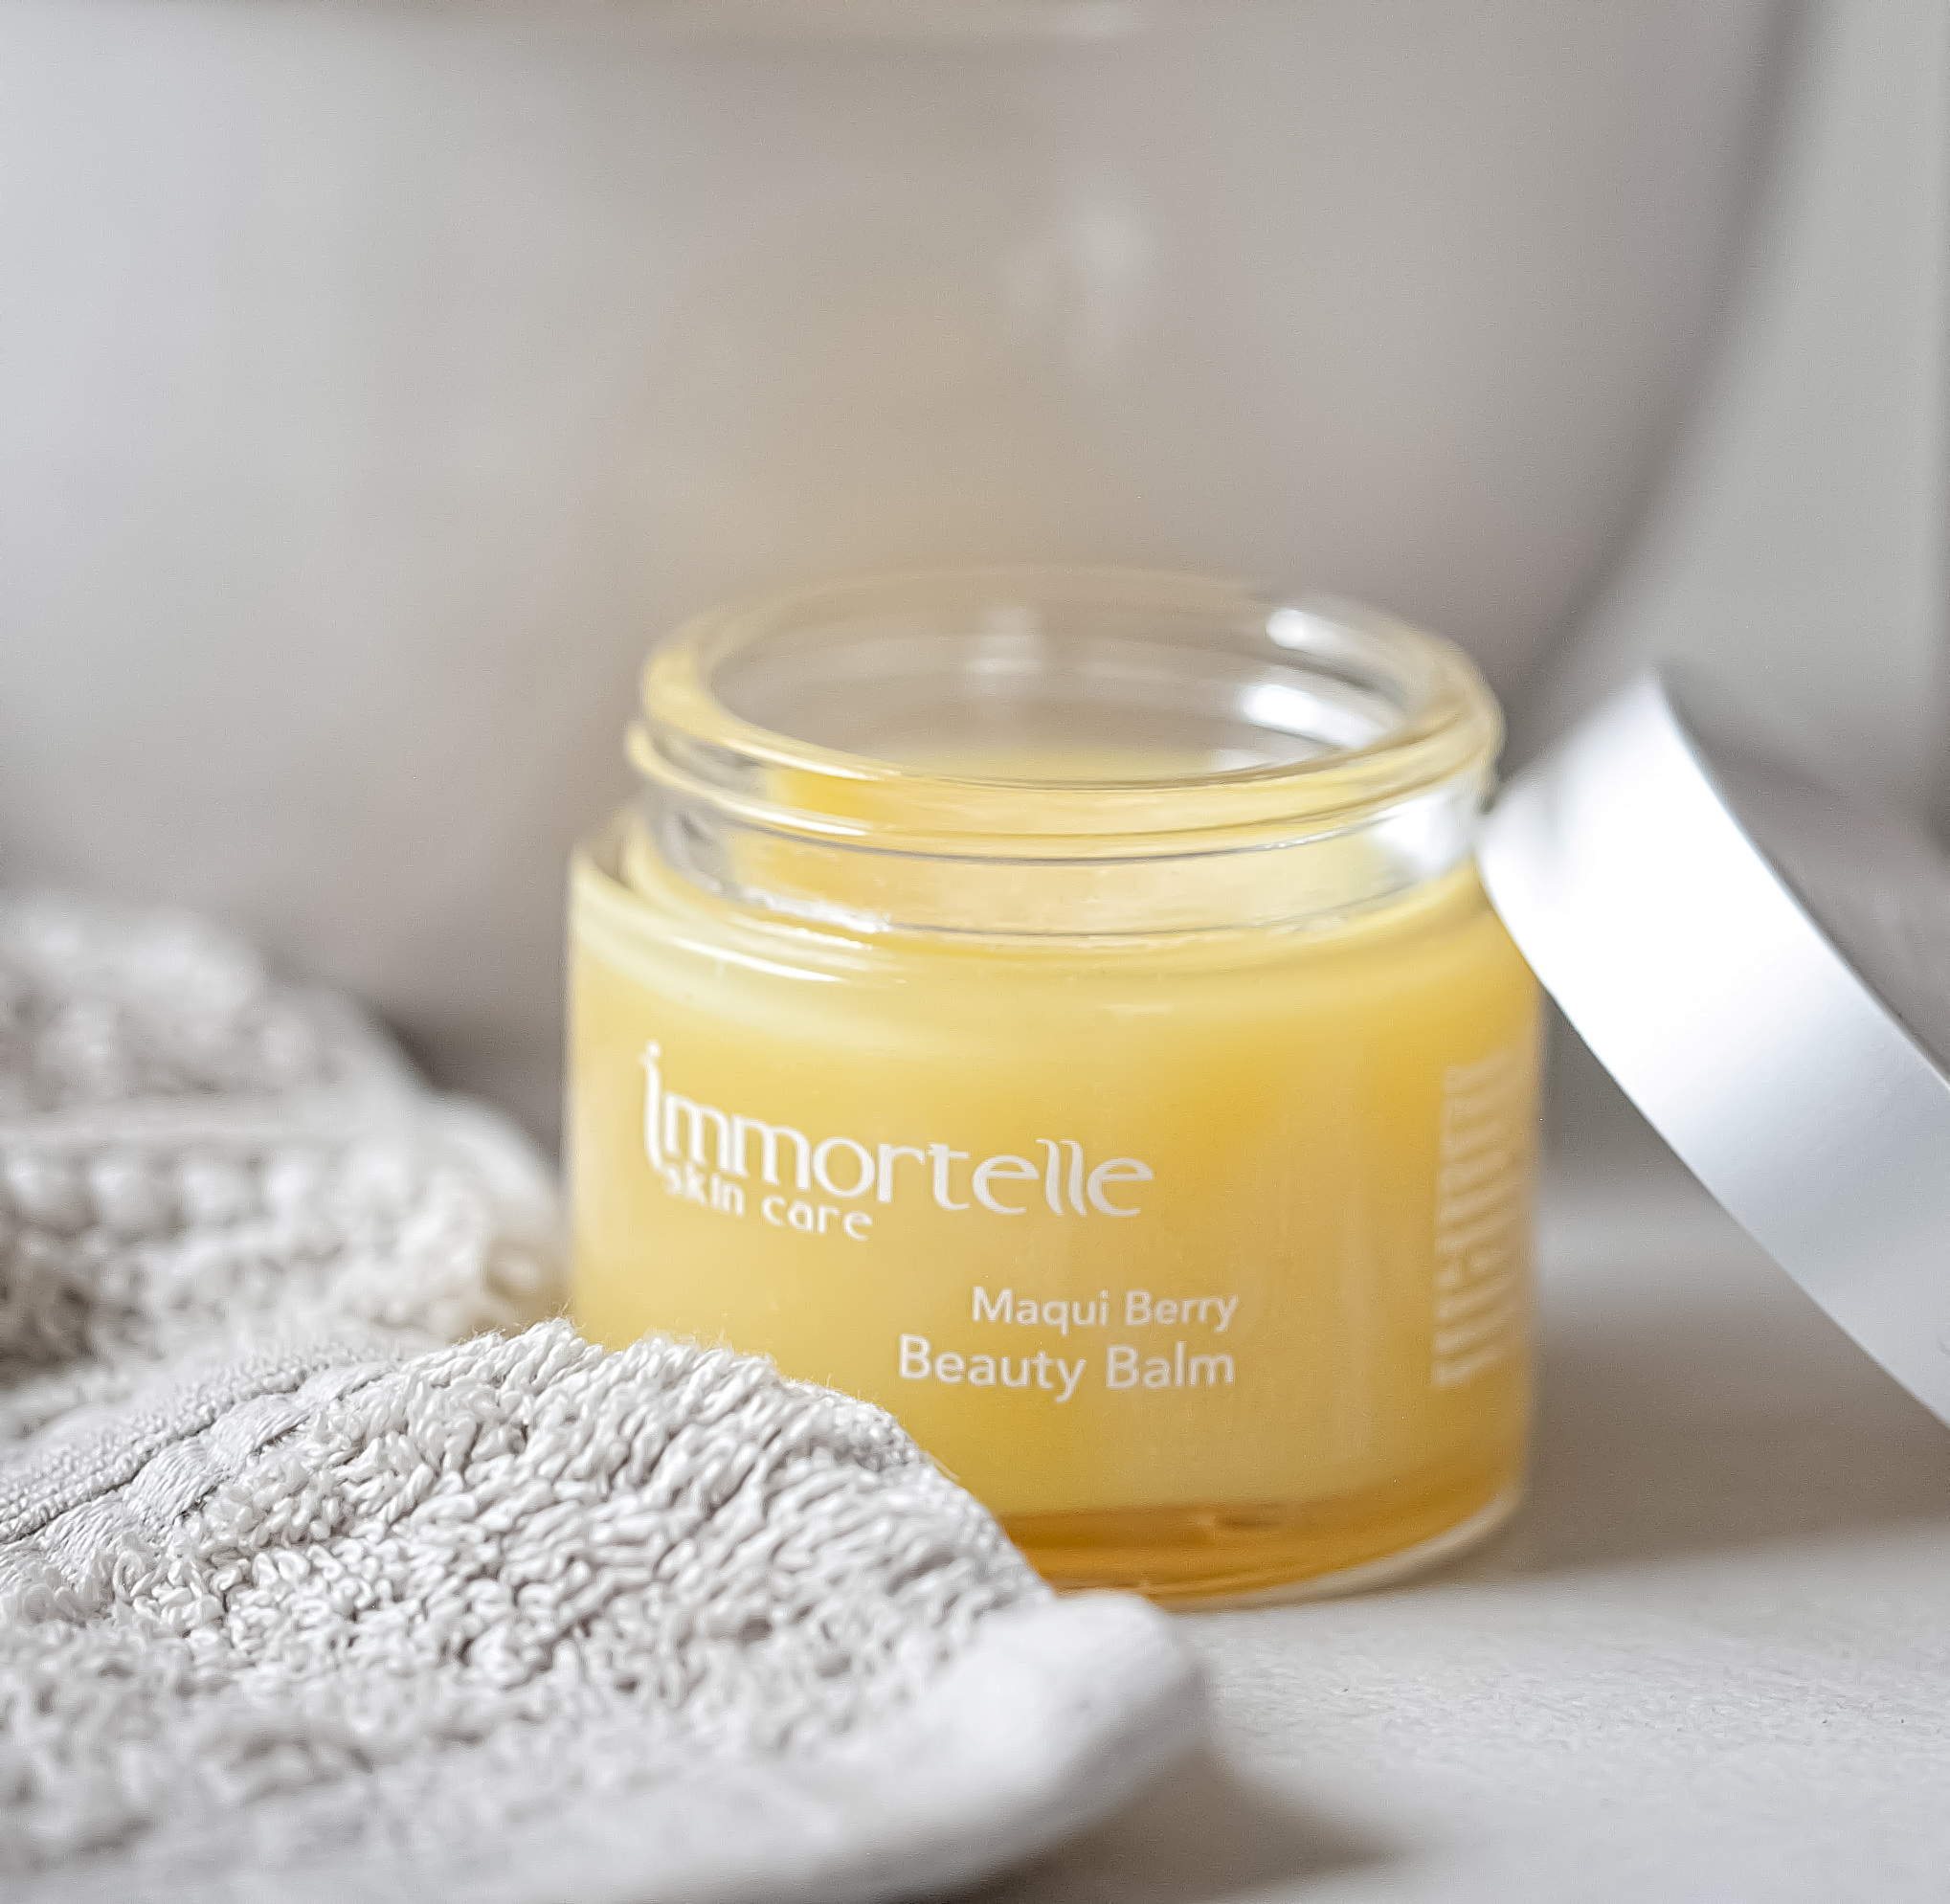 Immortelle Skin Care Maqui Berry Beauty Balm